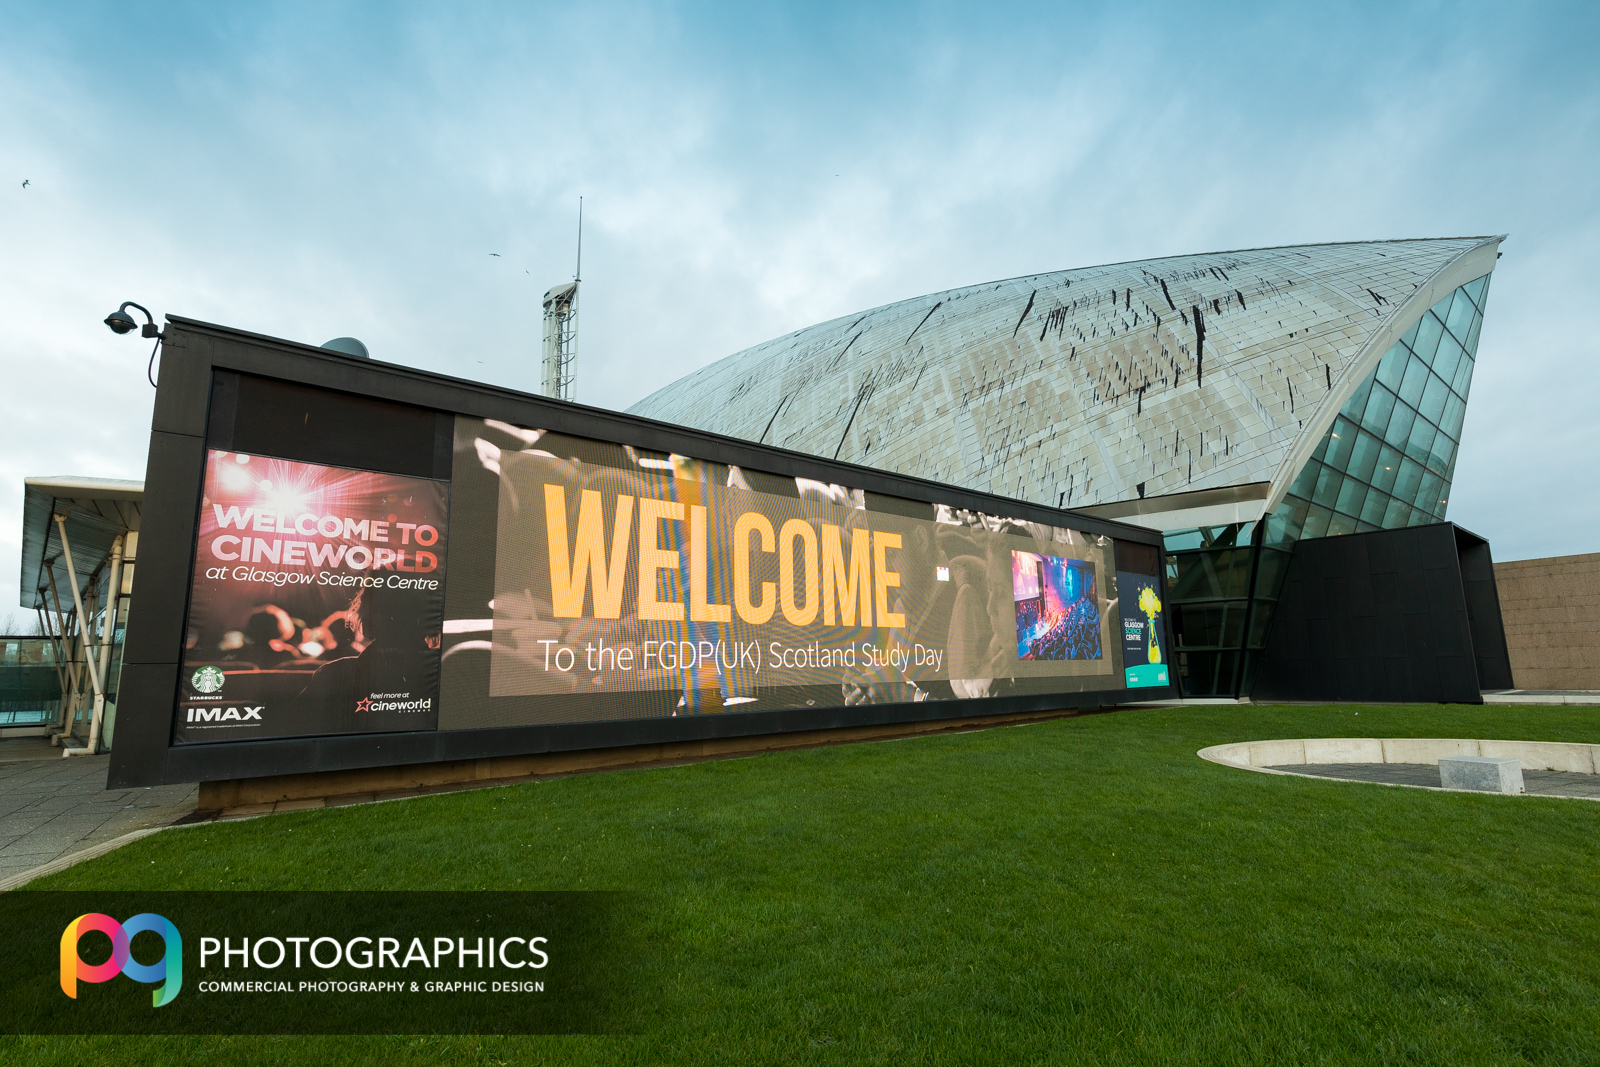 conference-event-PR-photography-science-centre-glasgow-edinburgh-scotland-7.jpg